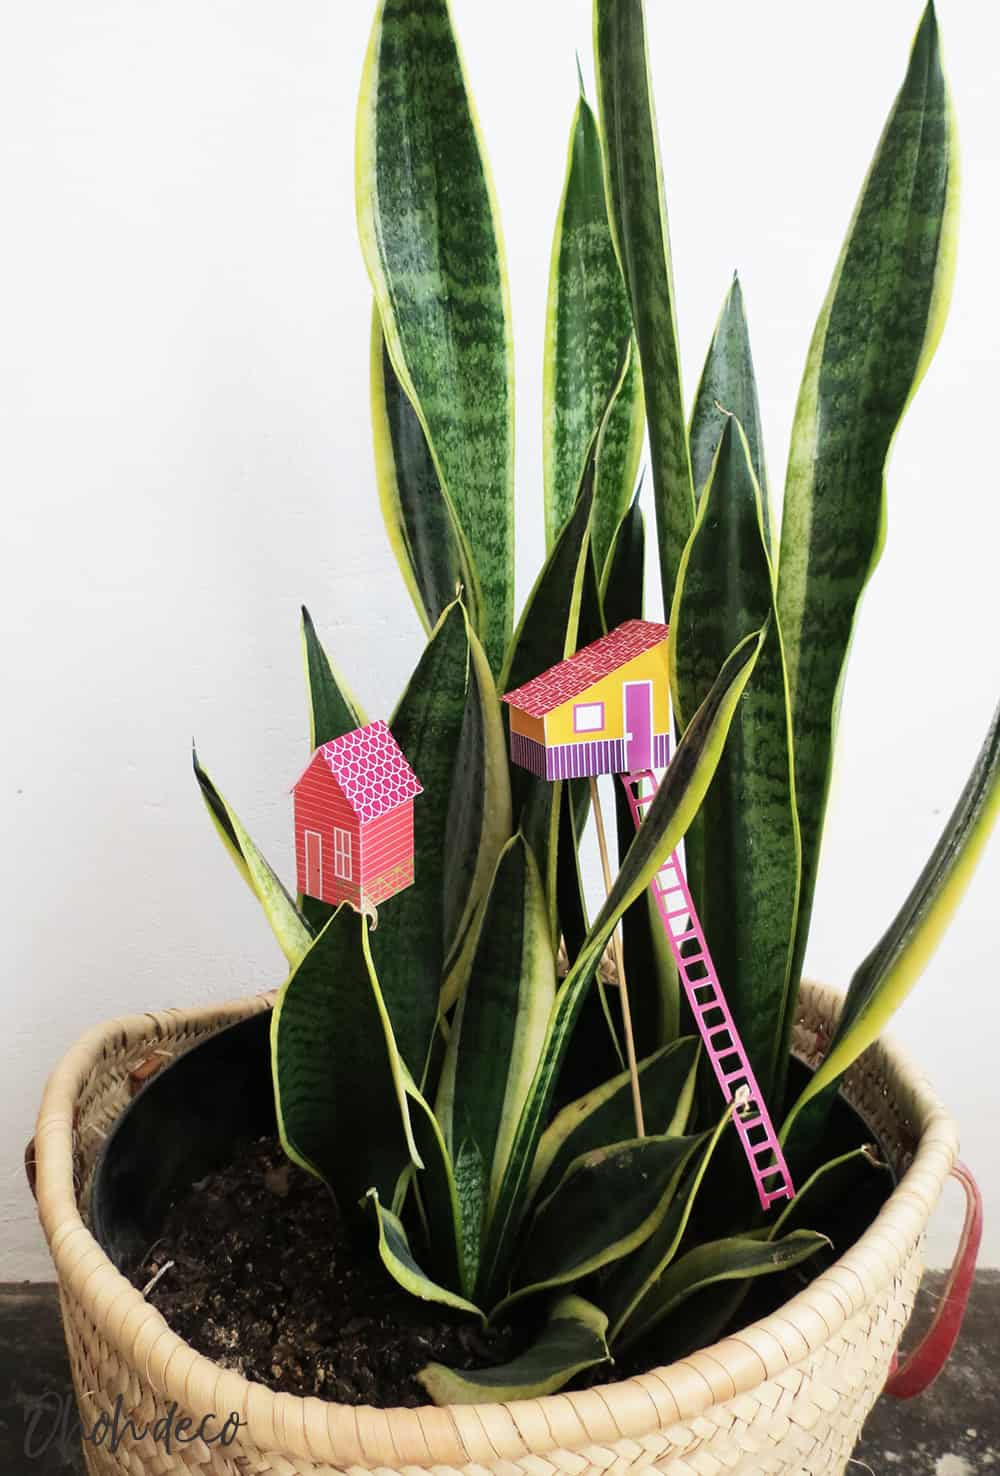 free house printable to decorate planters